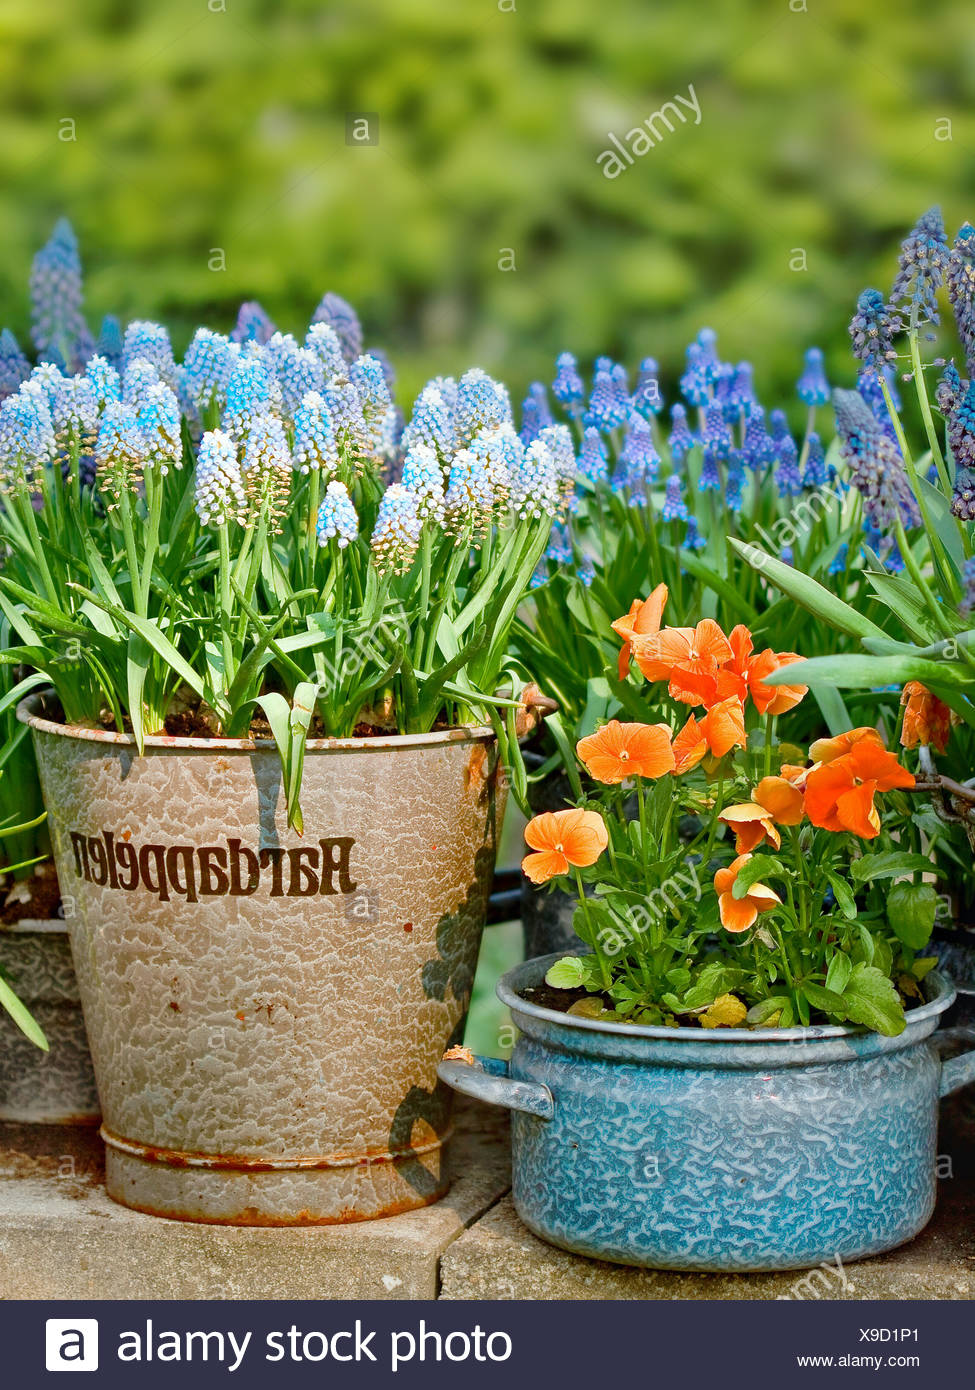 Plant Pots Bloom Garden Stock Photos Plant Pots Bloom Garden Stock